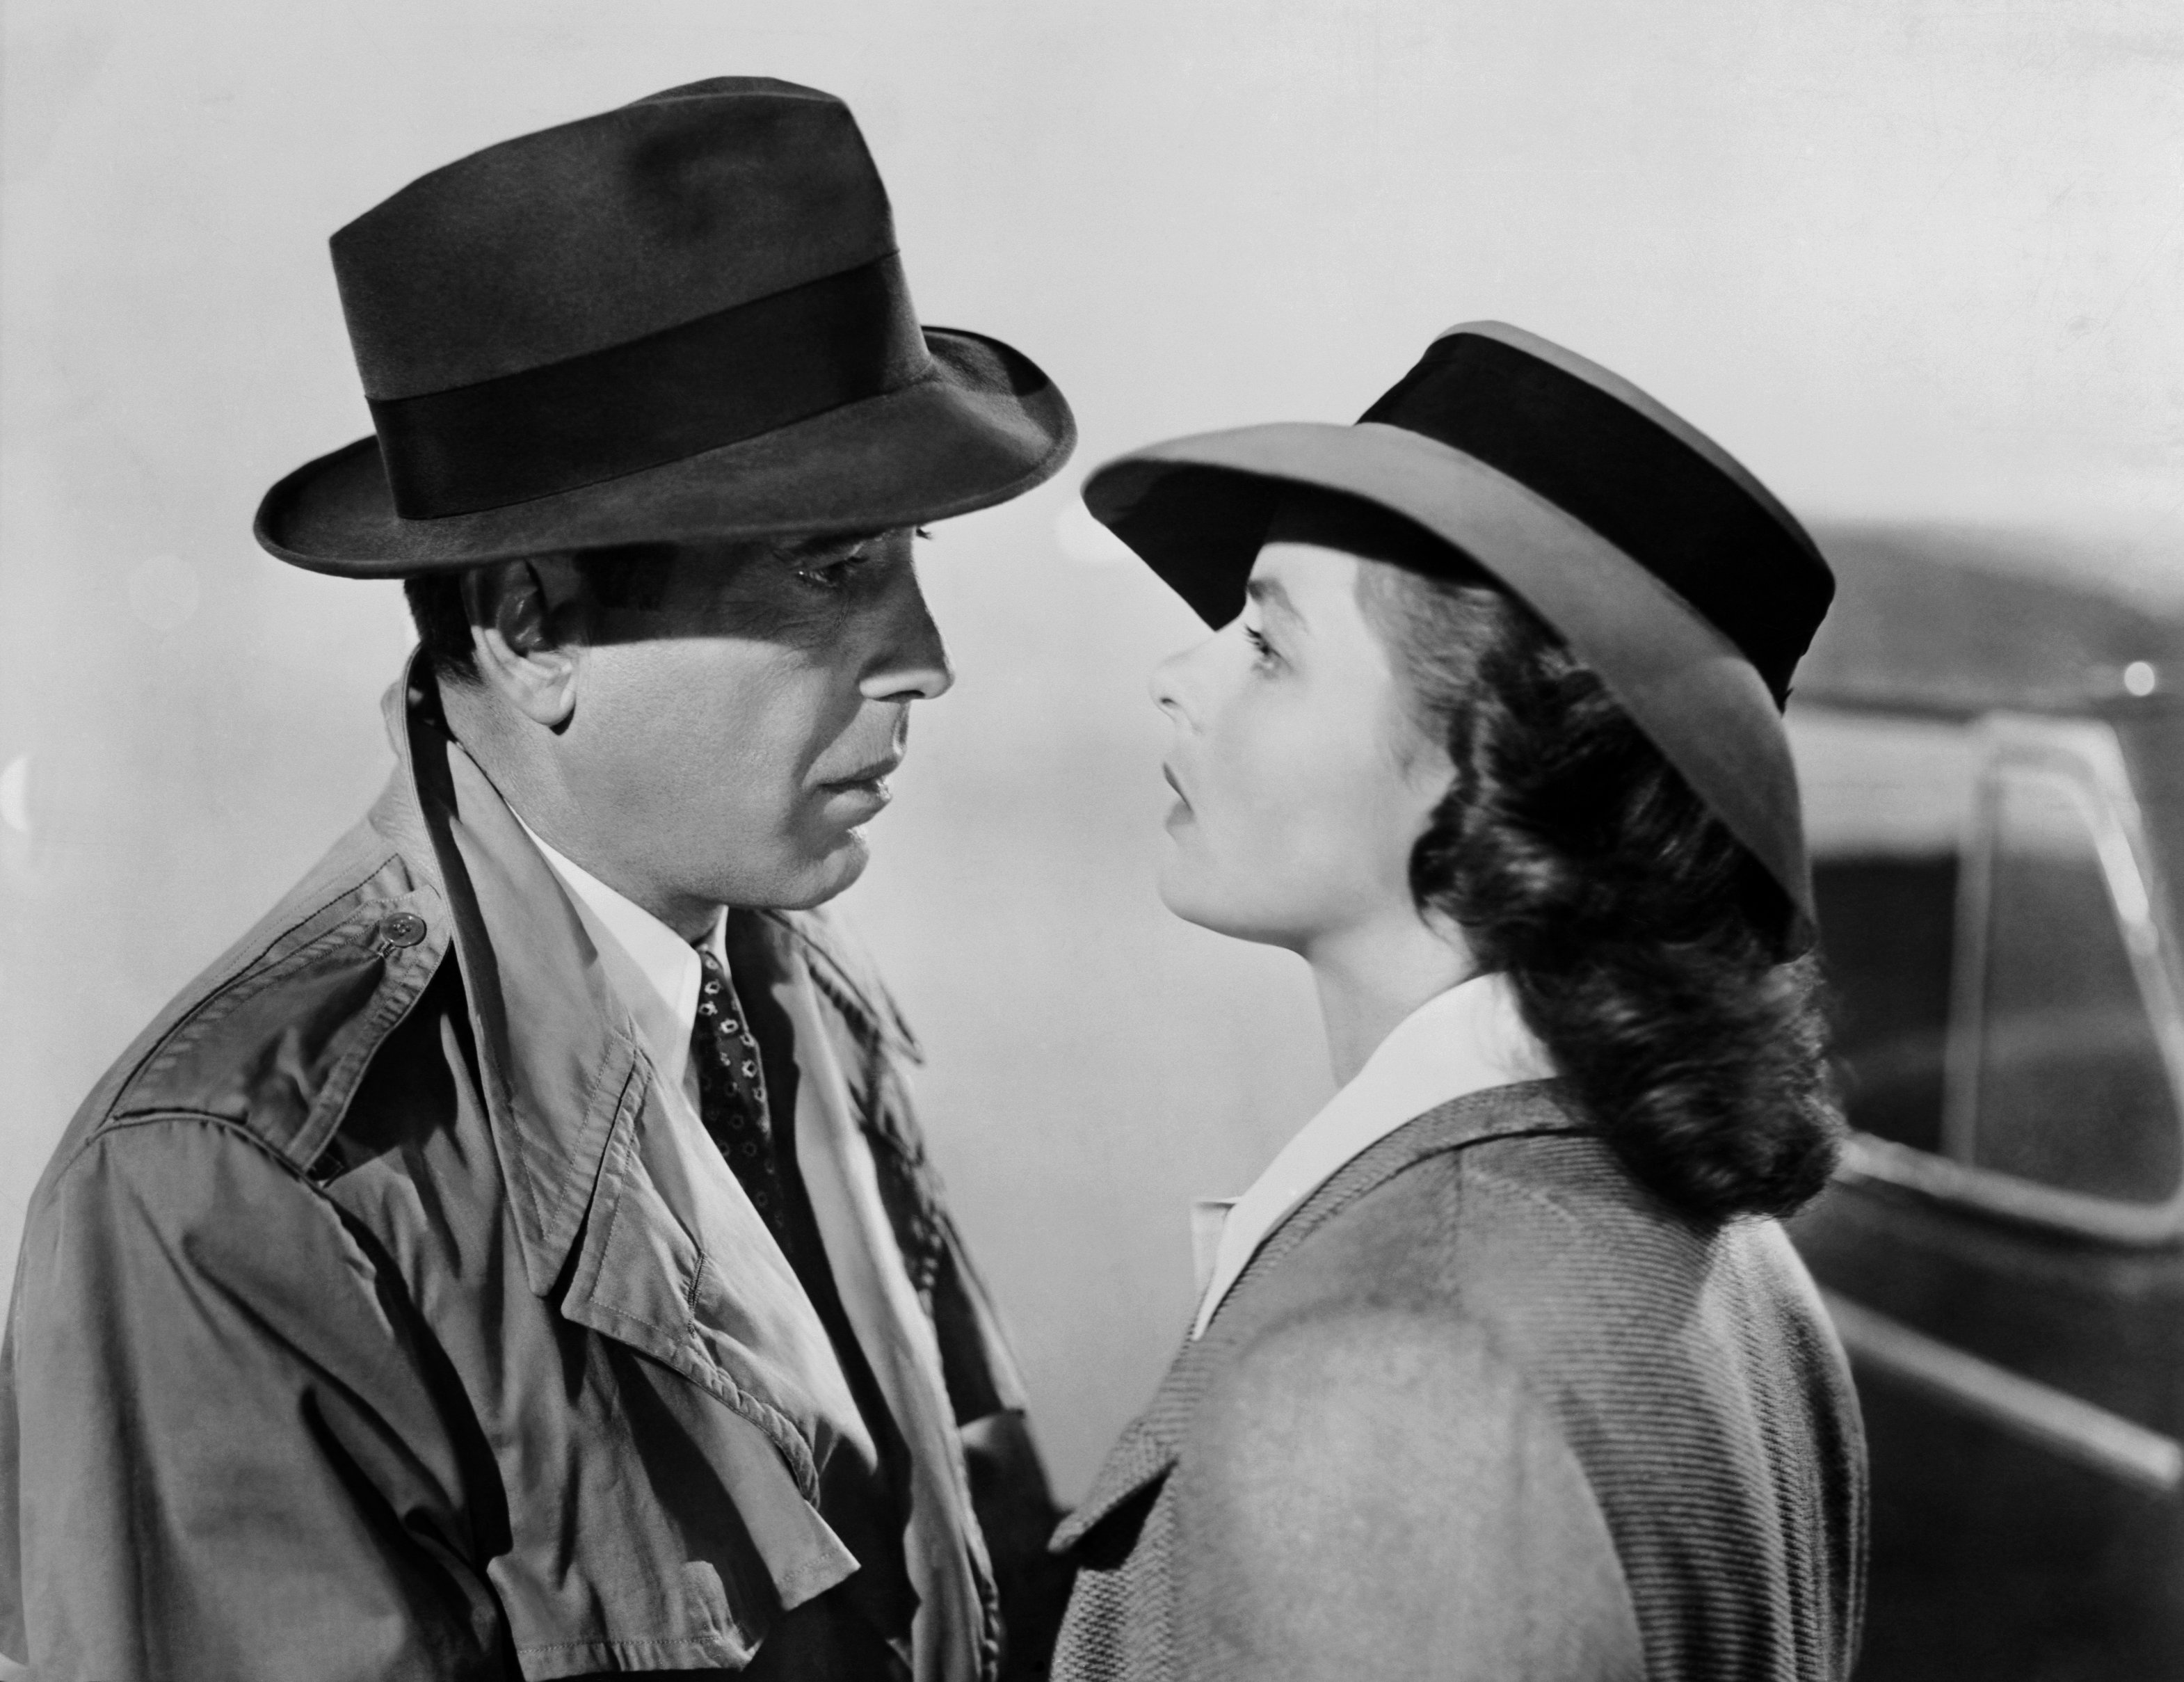 Casablanca ©1942 – All rights reserved. Courtesy Warner Bros. Home Entertainment, Inc.